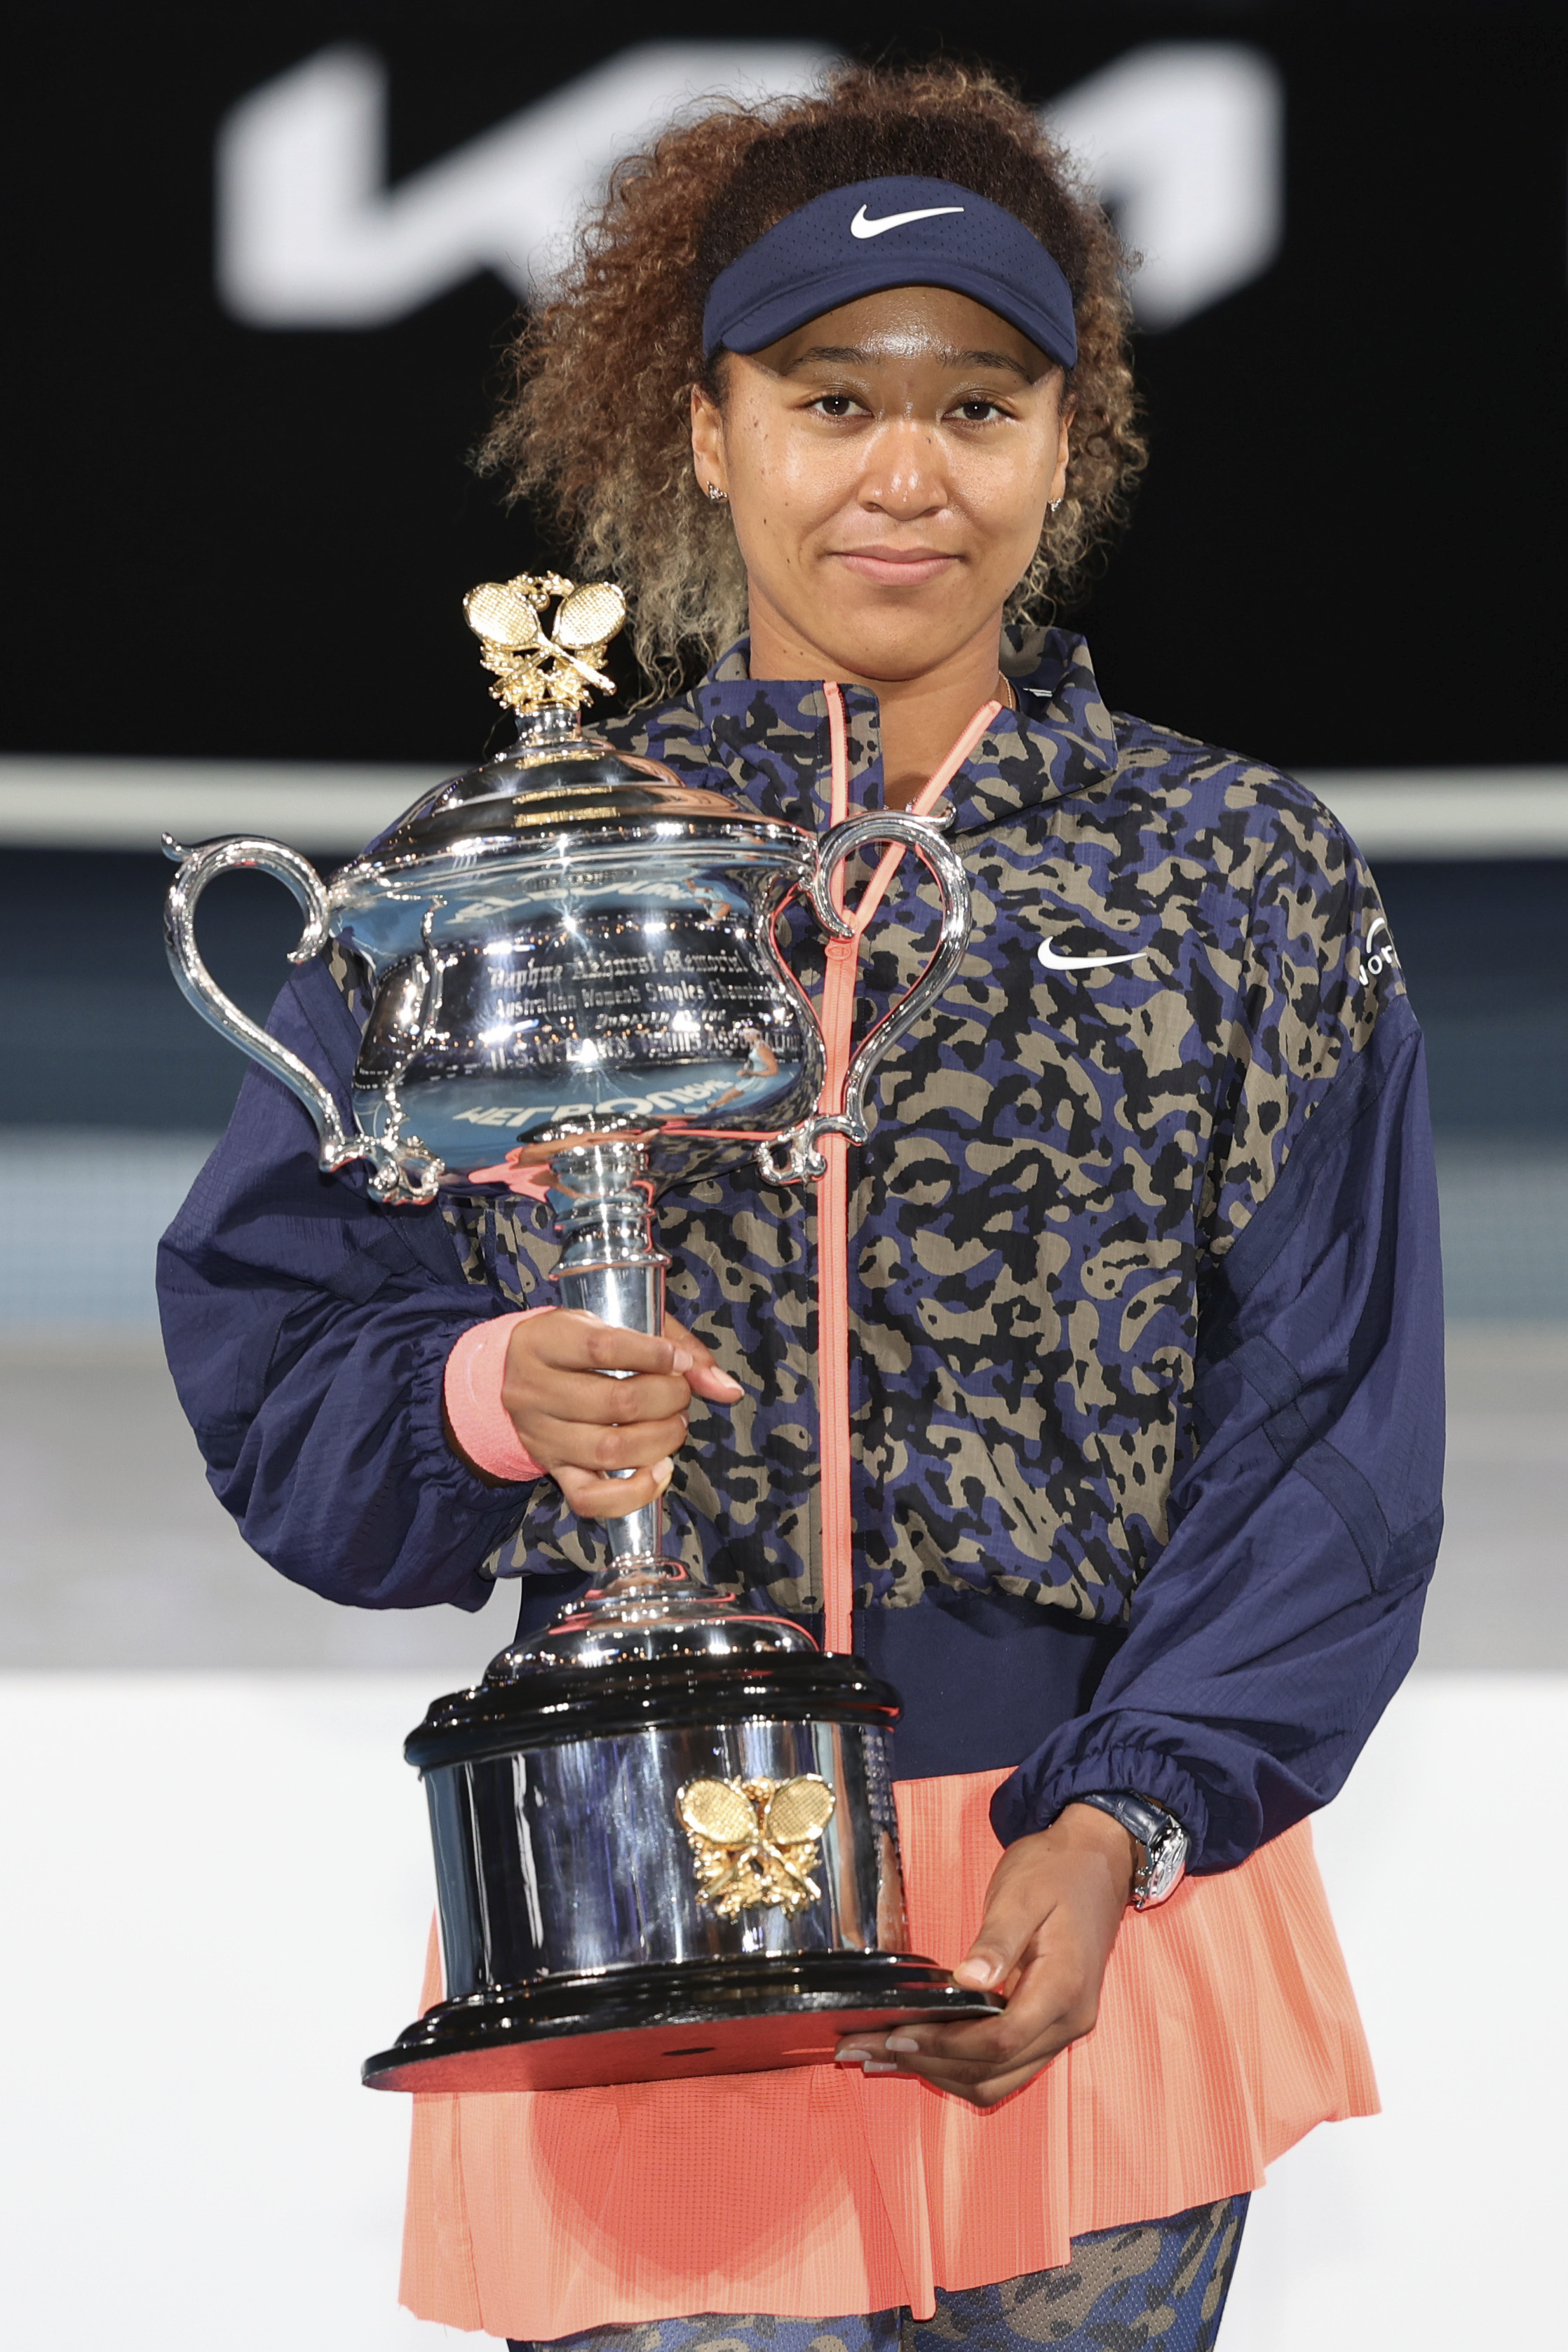 3rd seed Naomi OSAKA of Japan poses for photographs after defeating 22nd seed Jennifer BRADY of the USA in the Women's Singles Final match on day 13 of the 2021 Australian Open on Rod Laver Arena, in Melbourne, Australia. Sydney Low/Cal Sport Media.(Credit Image: © Sydney Low/CSM via ZUMA Wire) (Cal Sport Media via AP Images)